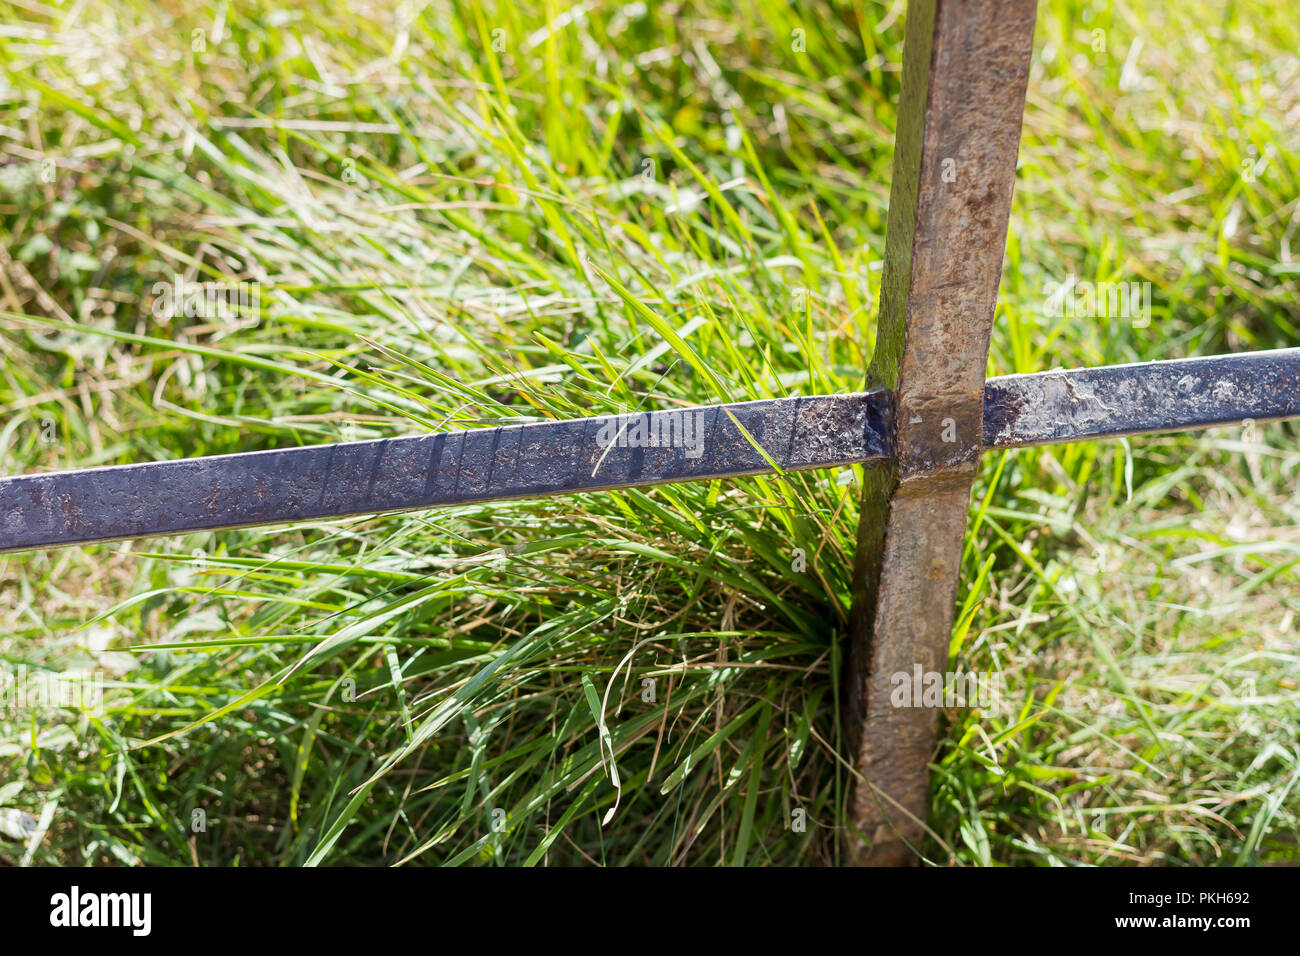 Grass and metal fence post close up - Stock Image